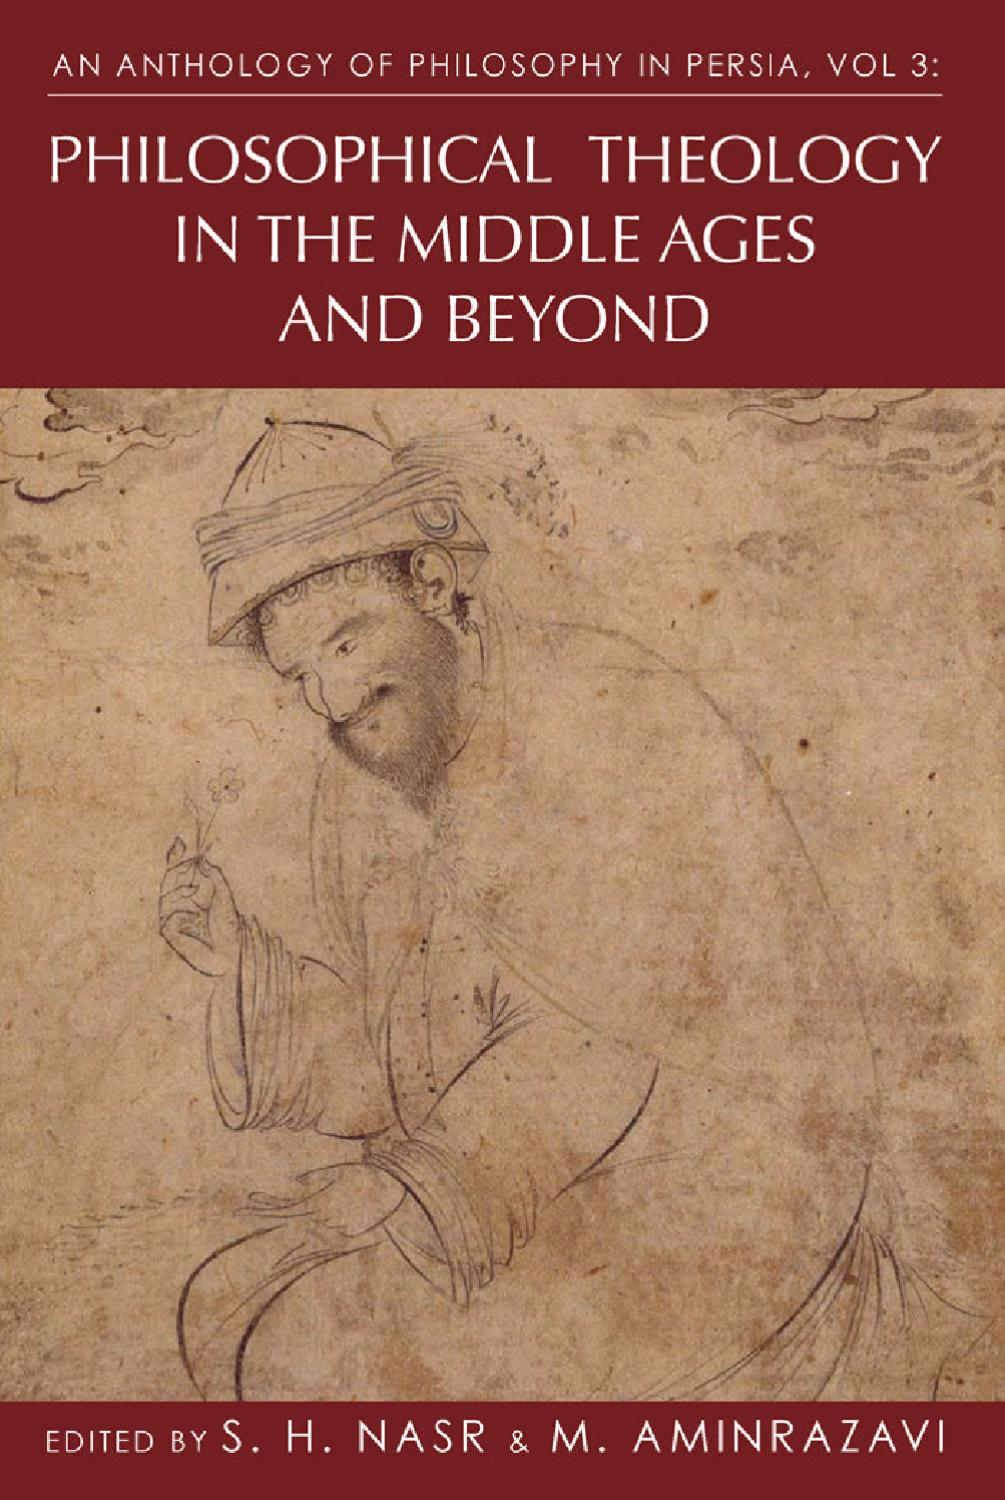 theology in the middle ages Philosophy and theology in the middle ages (review) paul crittenden parergon, volume 12, number 2, january 1995, pp 168-169 (review) published by australian and new zealand association of medieval and early.